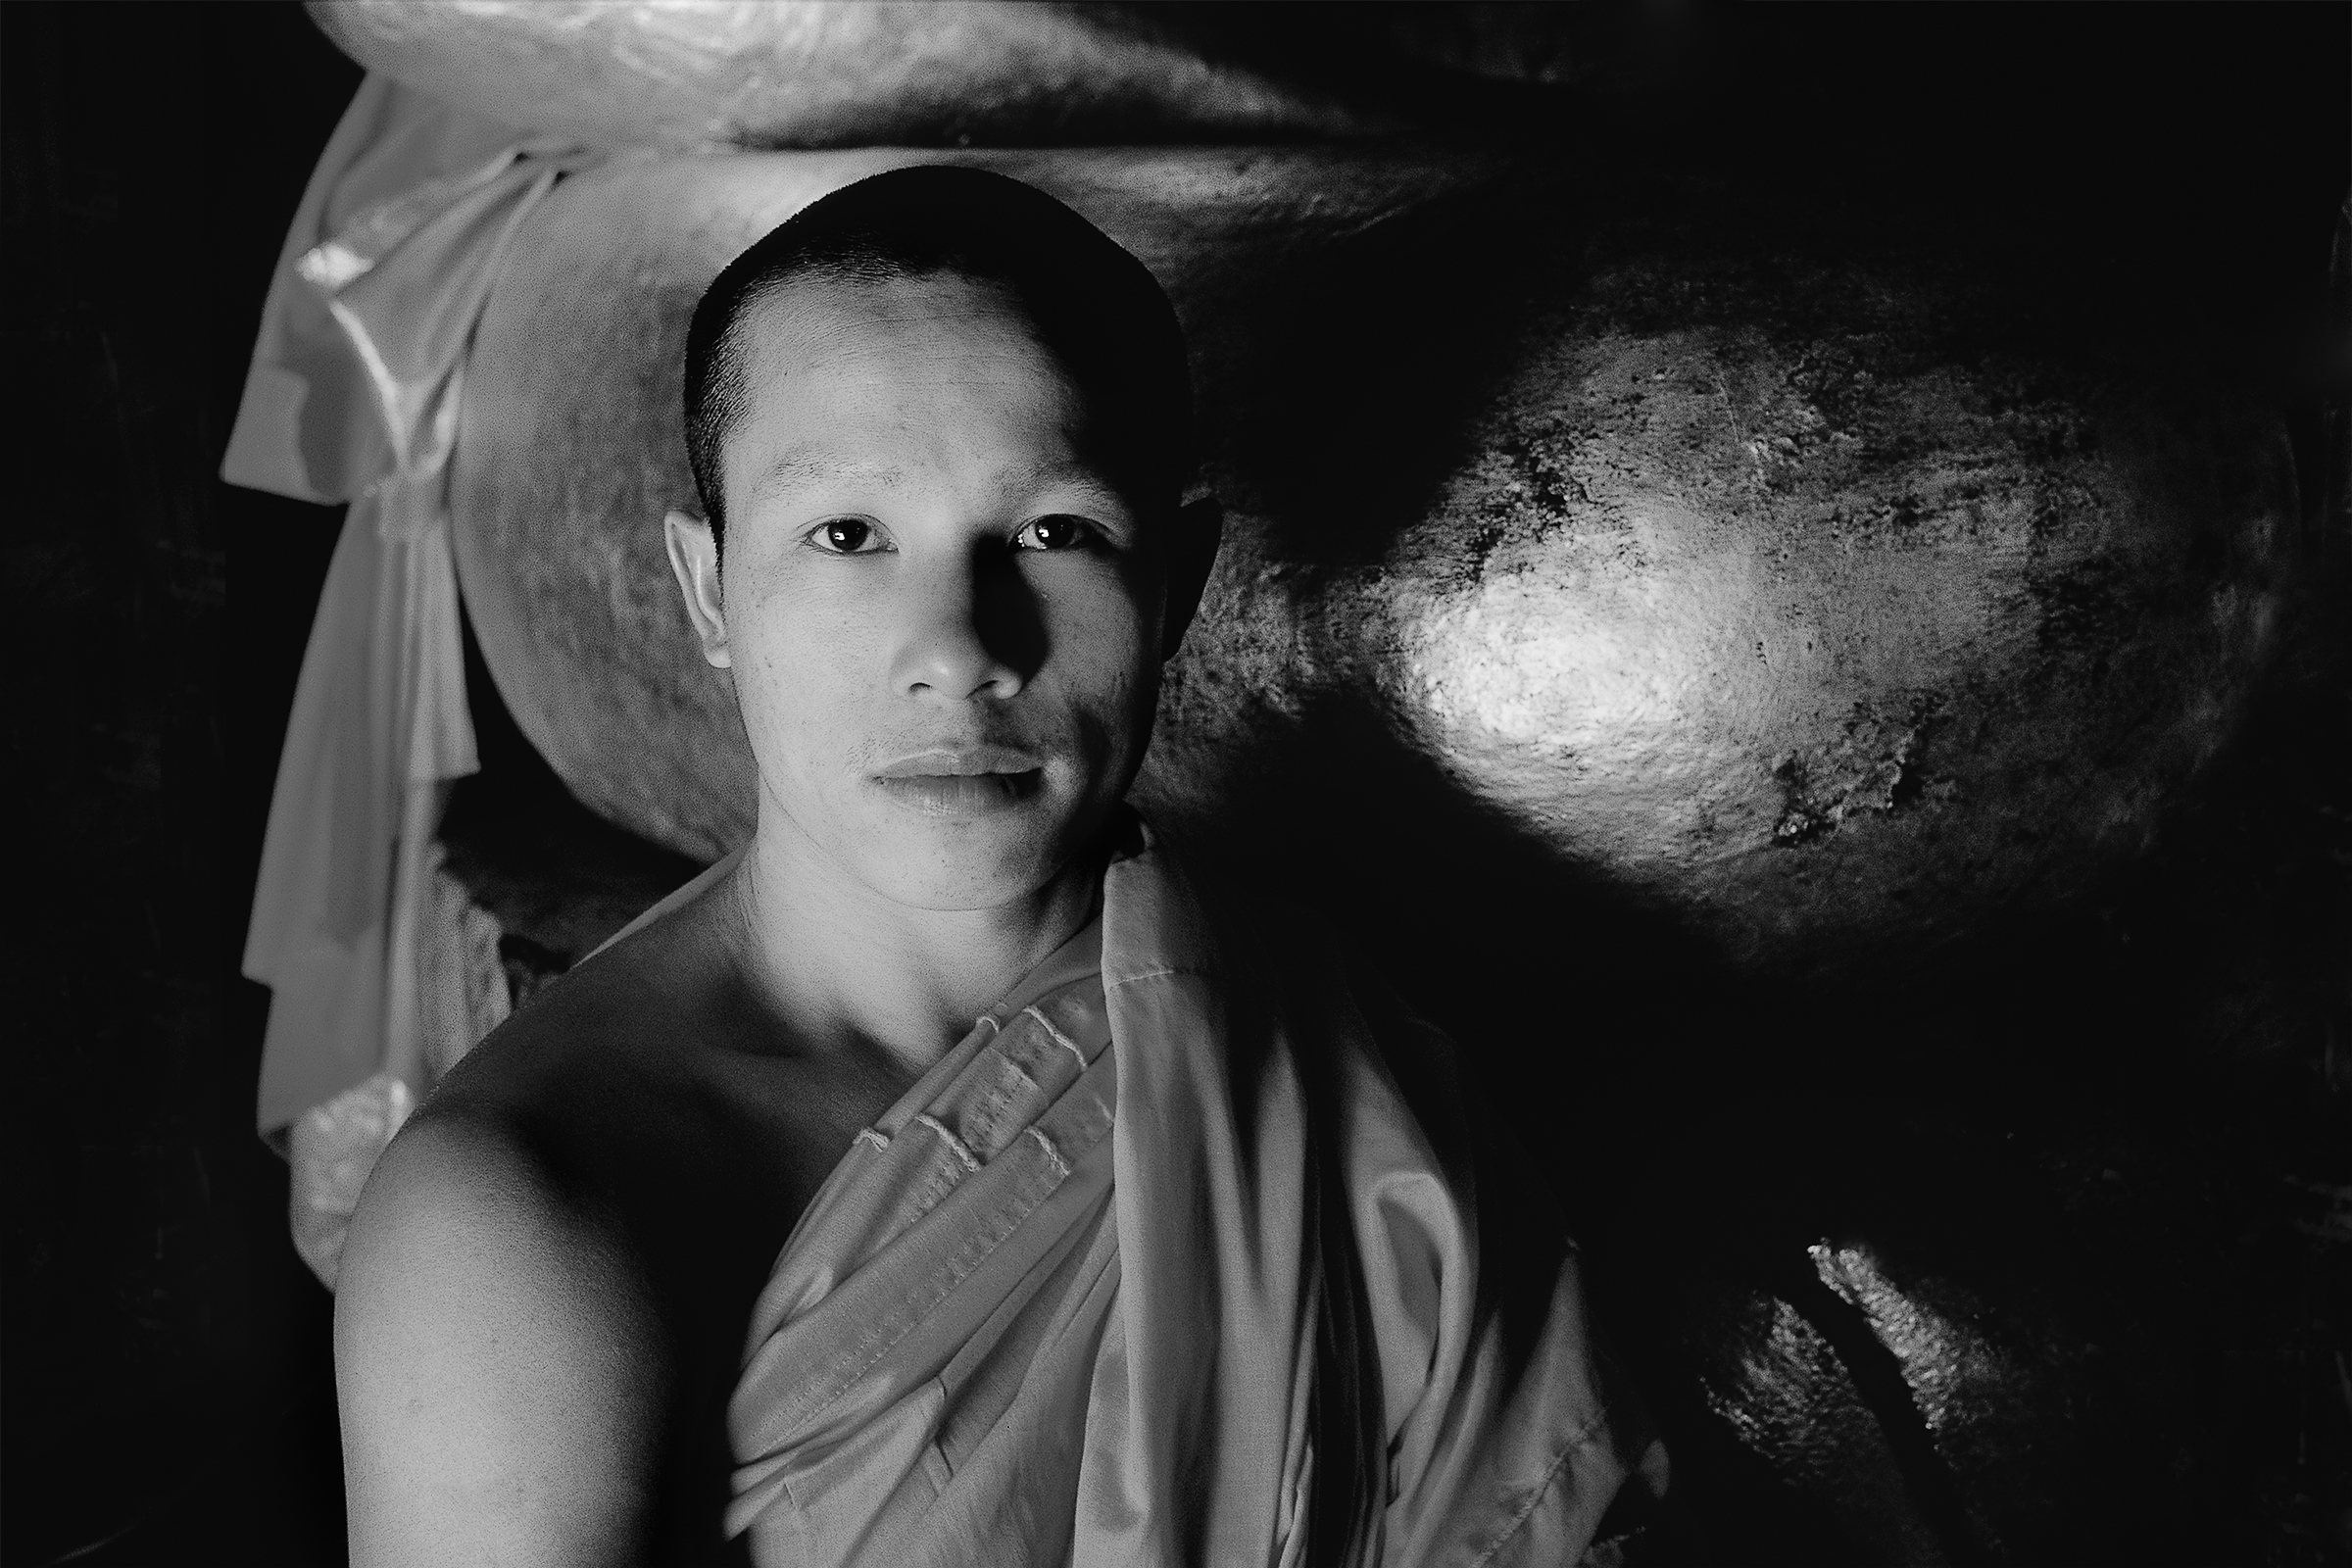 A formal portrait of a    Buddhist monk   , bathed in window light, in    Luang Prabang, Laos   .